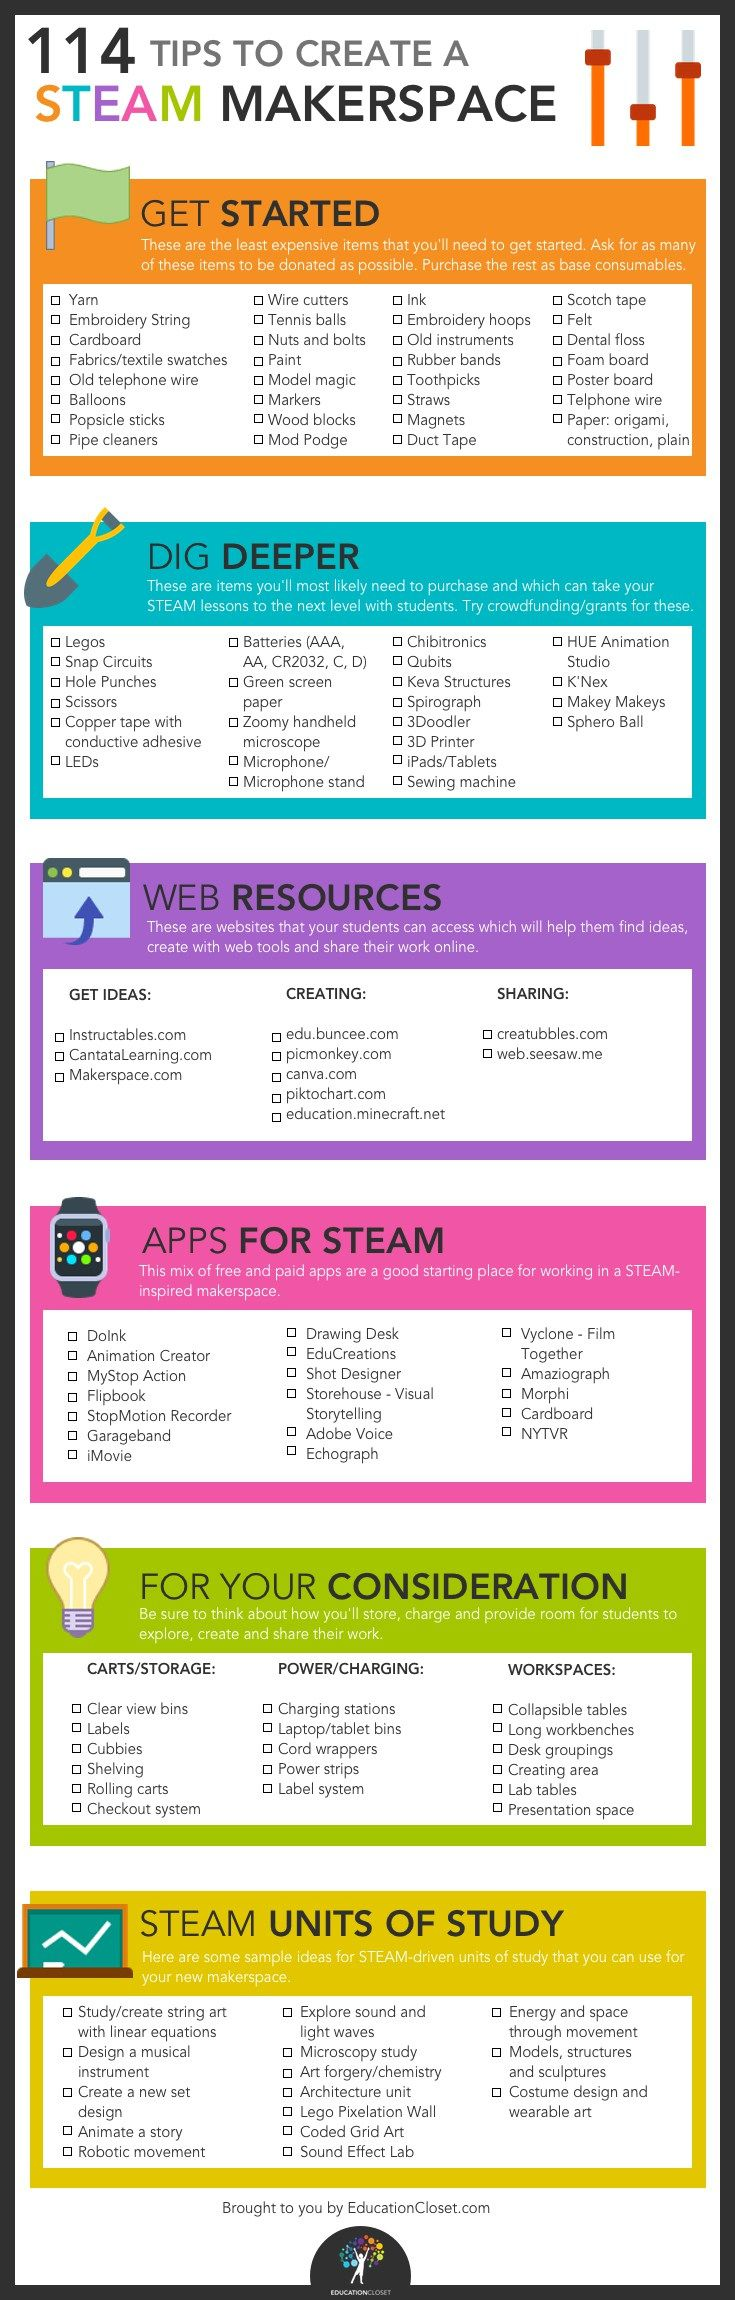 114 Tips to Create a STEAM Makerspace   educationcloset.com